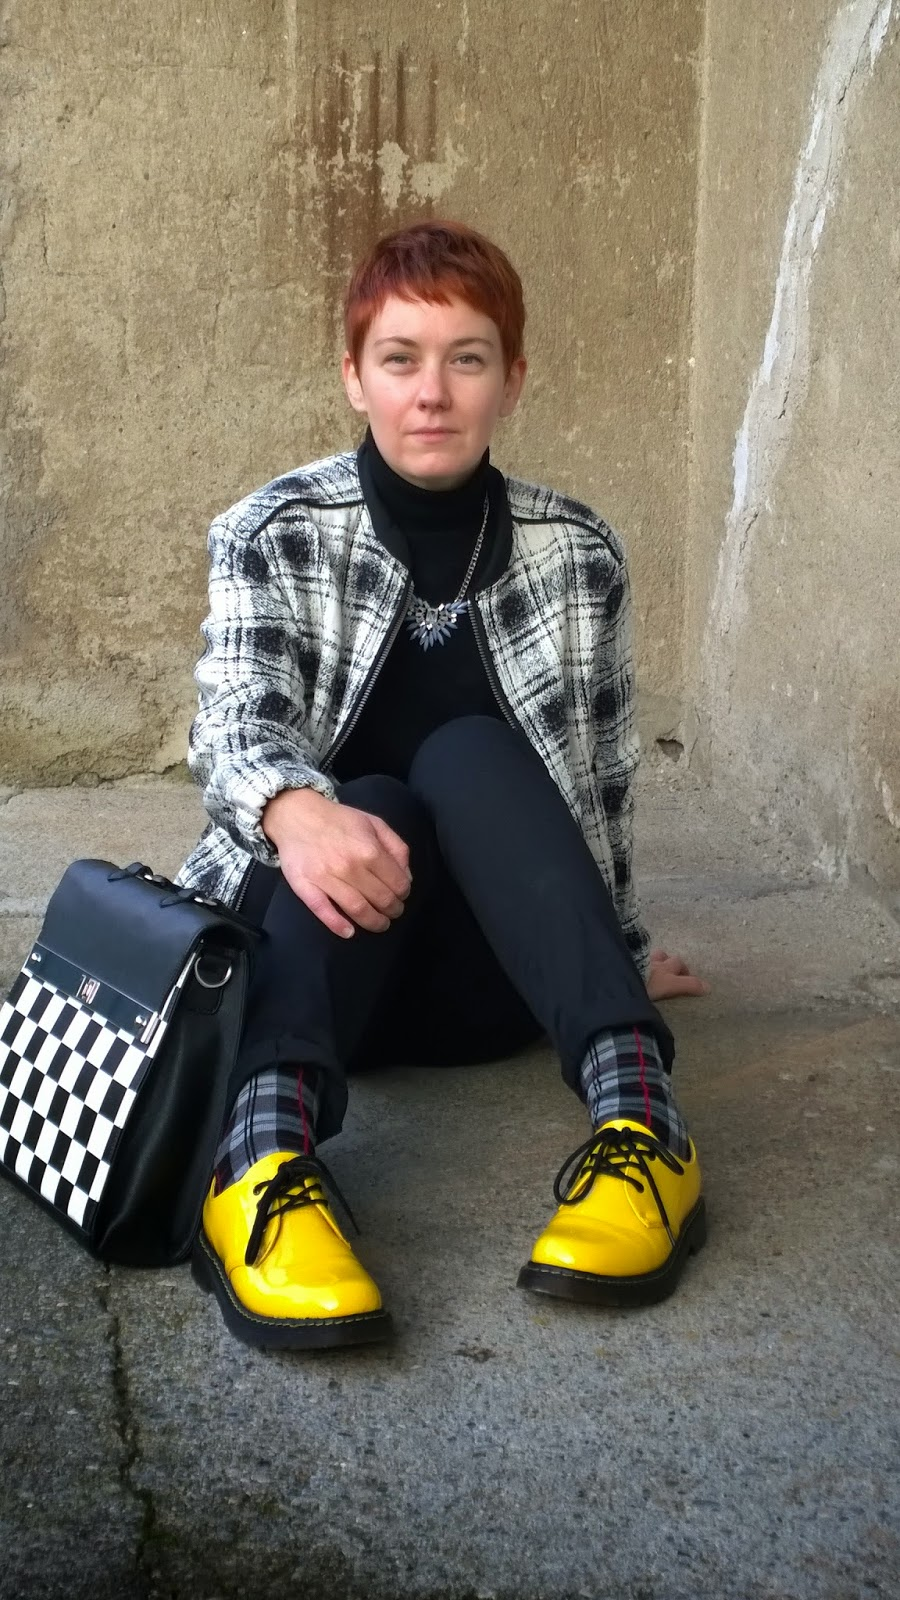 yellow lace up shoes, chessboard check messenger bag, plaid socks, plaid bomber jacket, short red hair